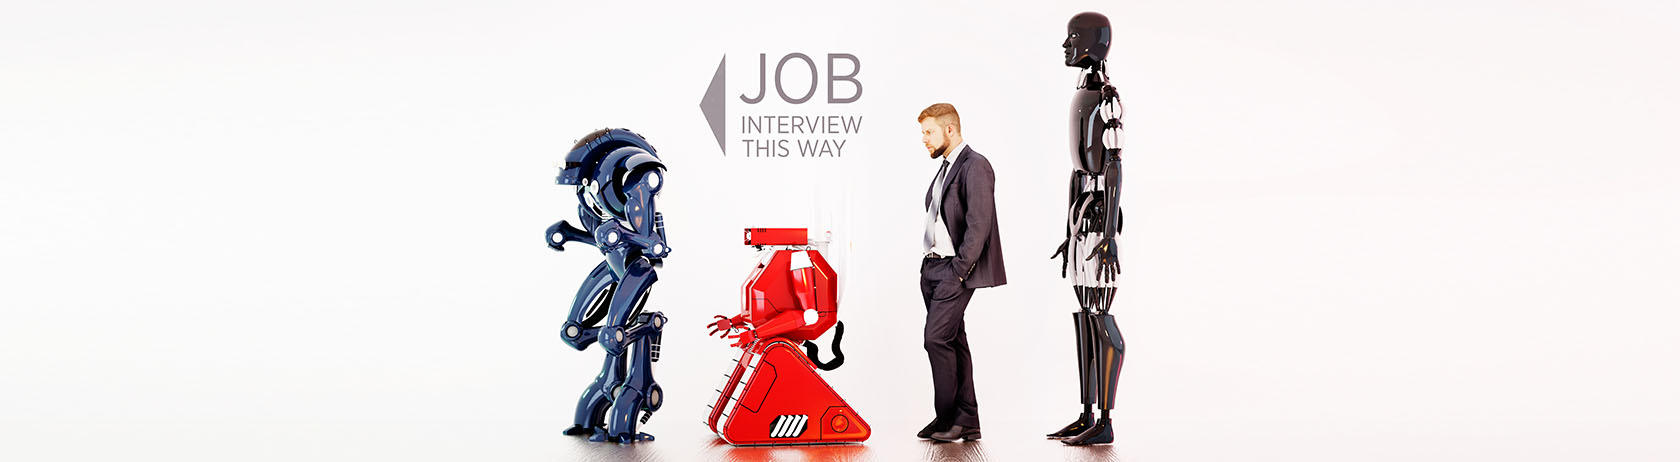 Man waiting in interview queue alongside robots